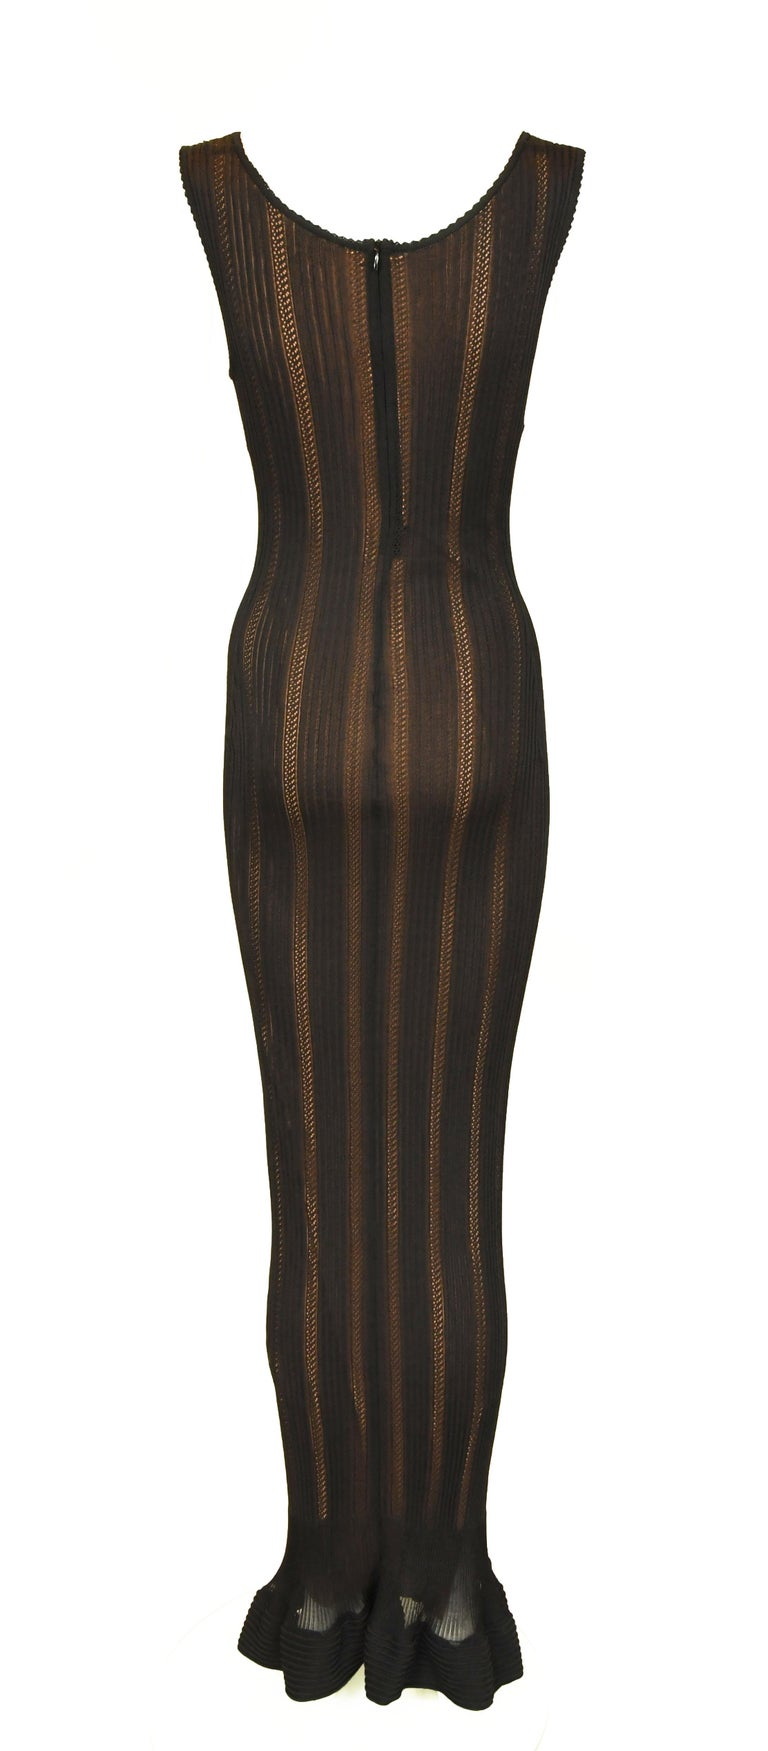 Women's Vintage Alaia Black Knit Jacquard Gown with Nude Slip - Size S For Sale